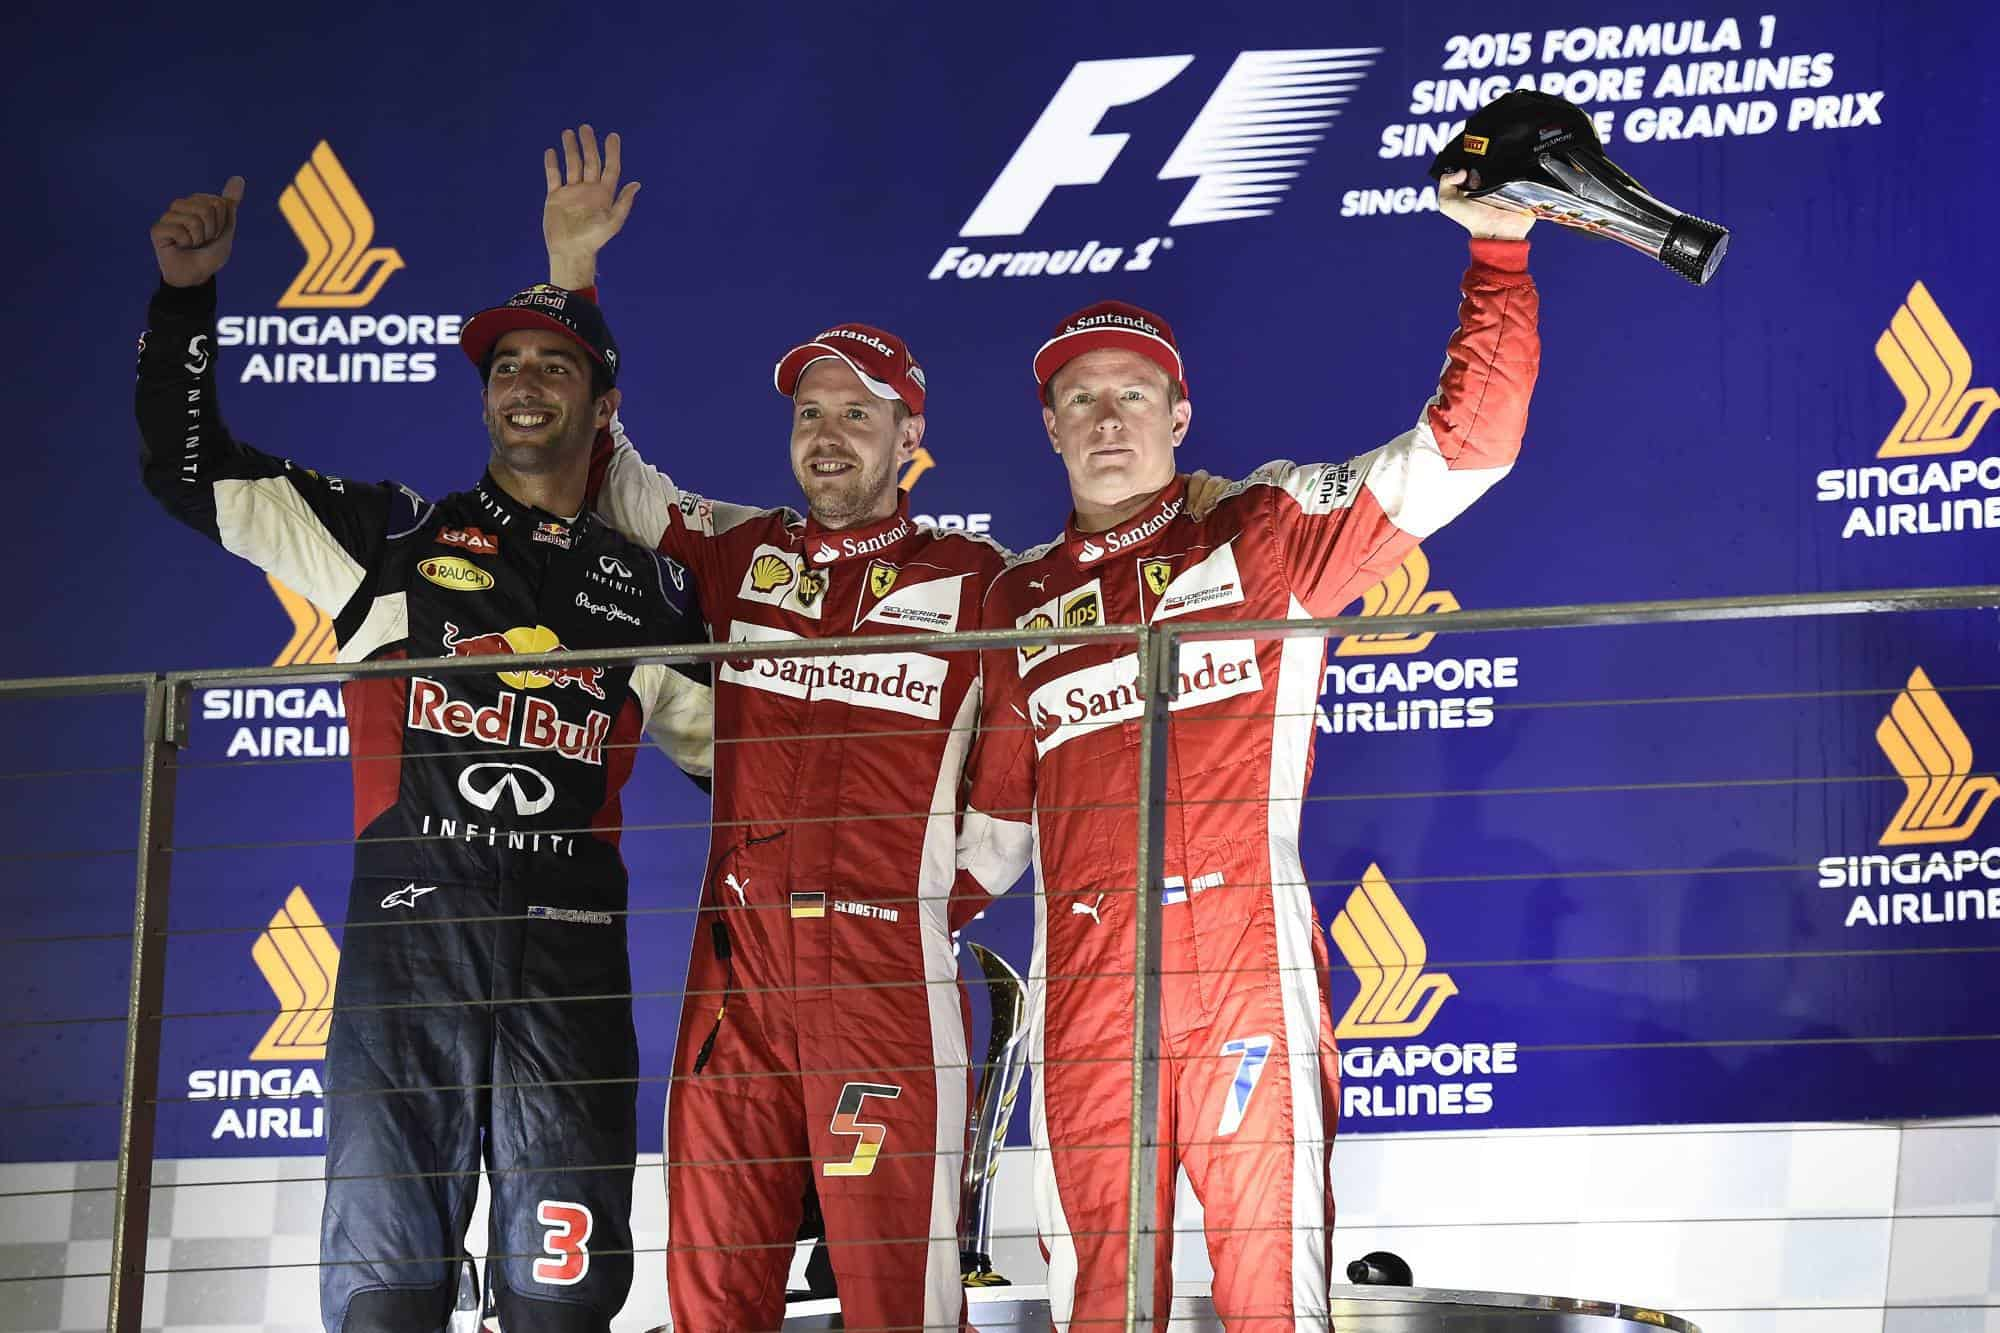 2015 Singapore GP podium Ricciardo Vettel Raikkonen Photo Ferrari